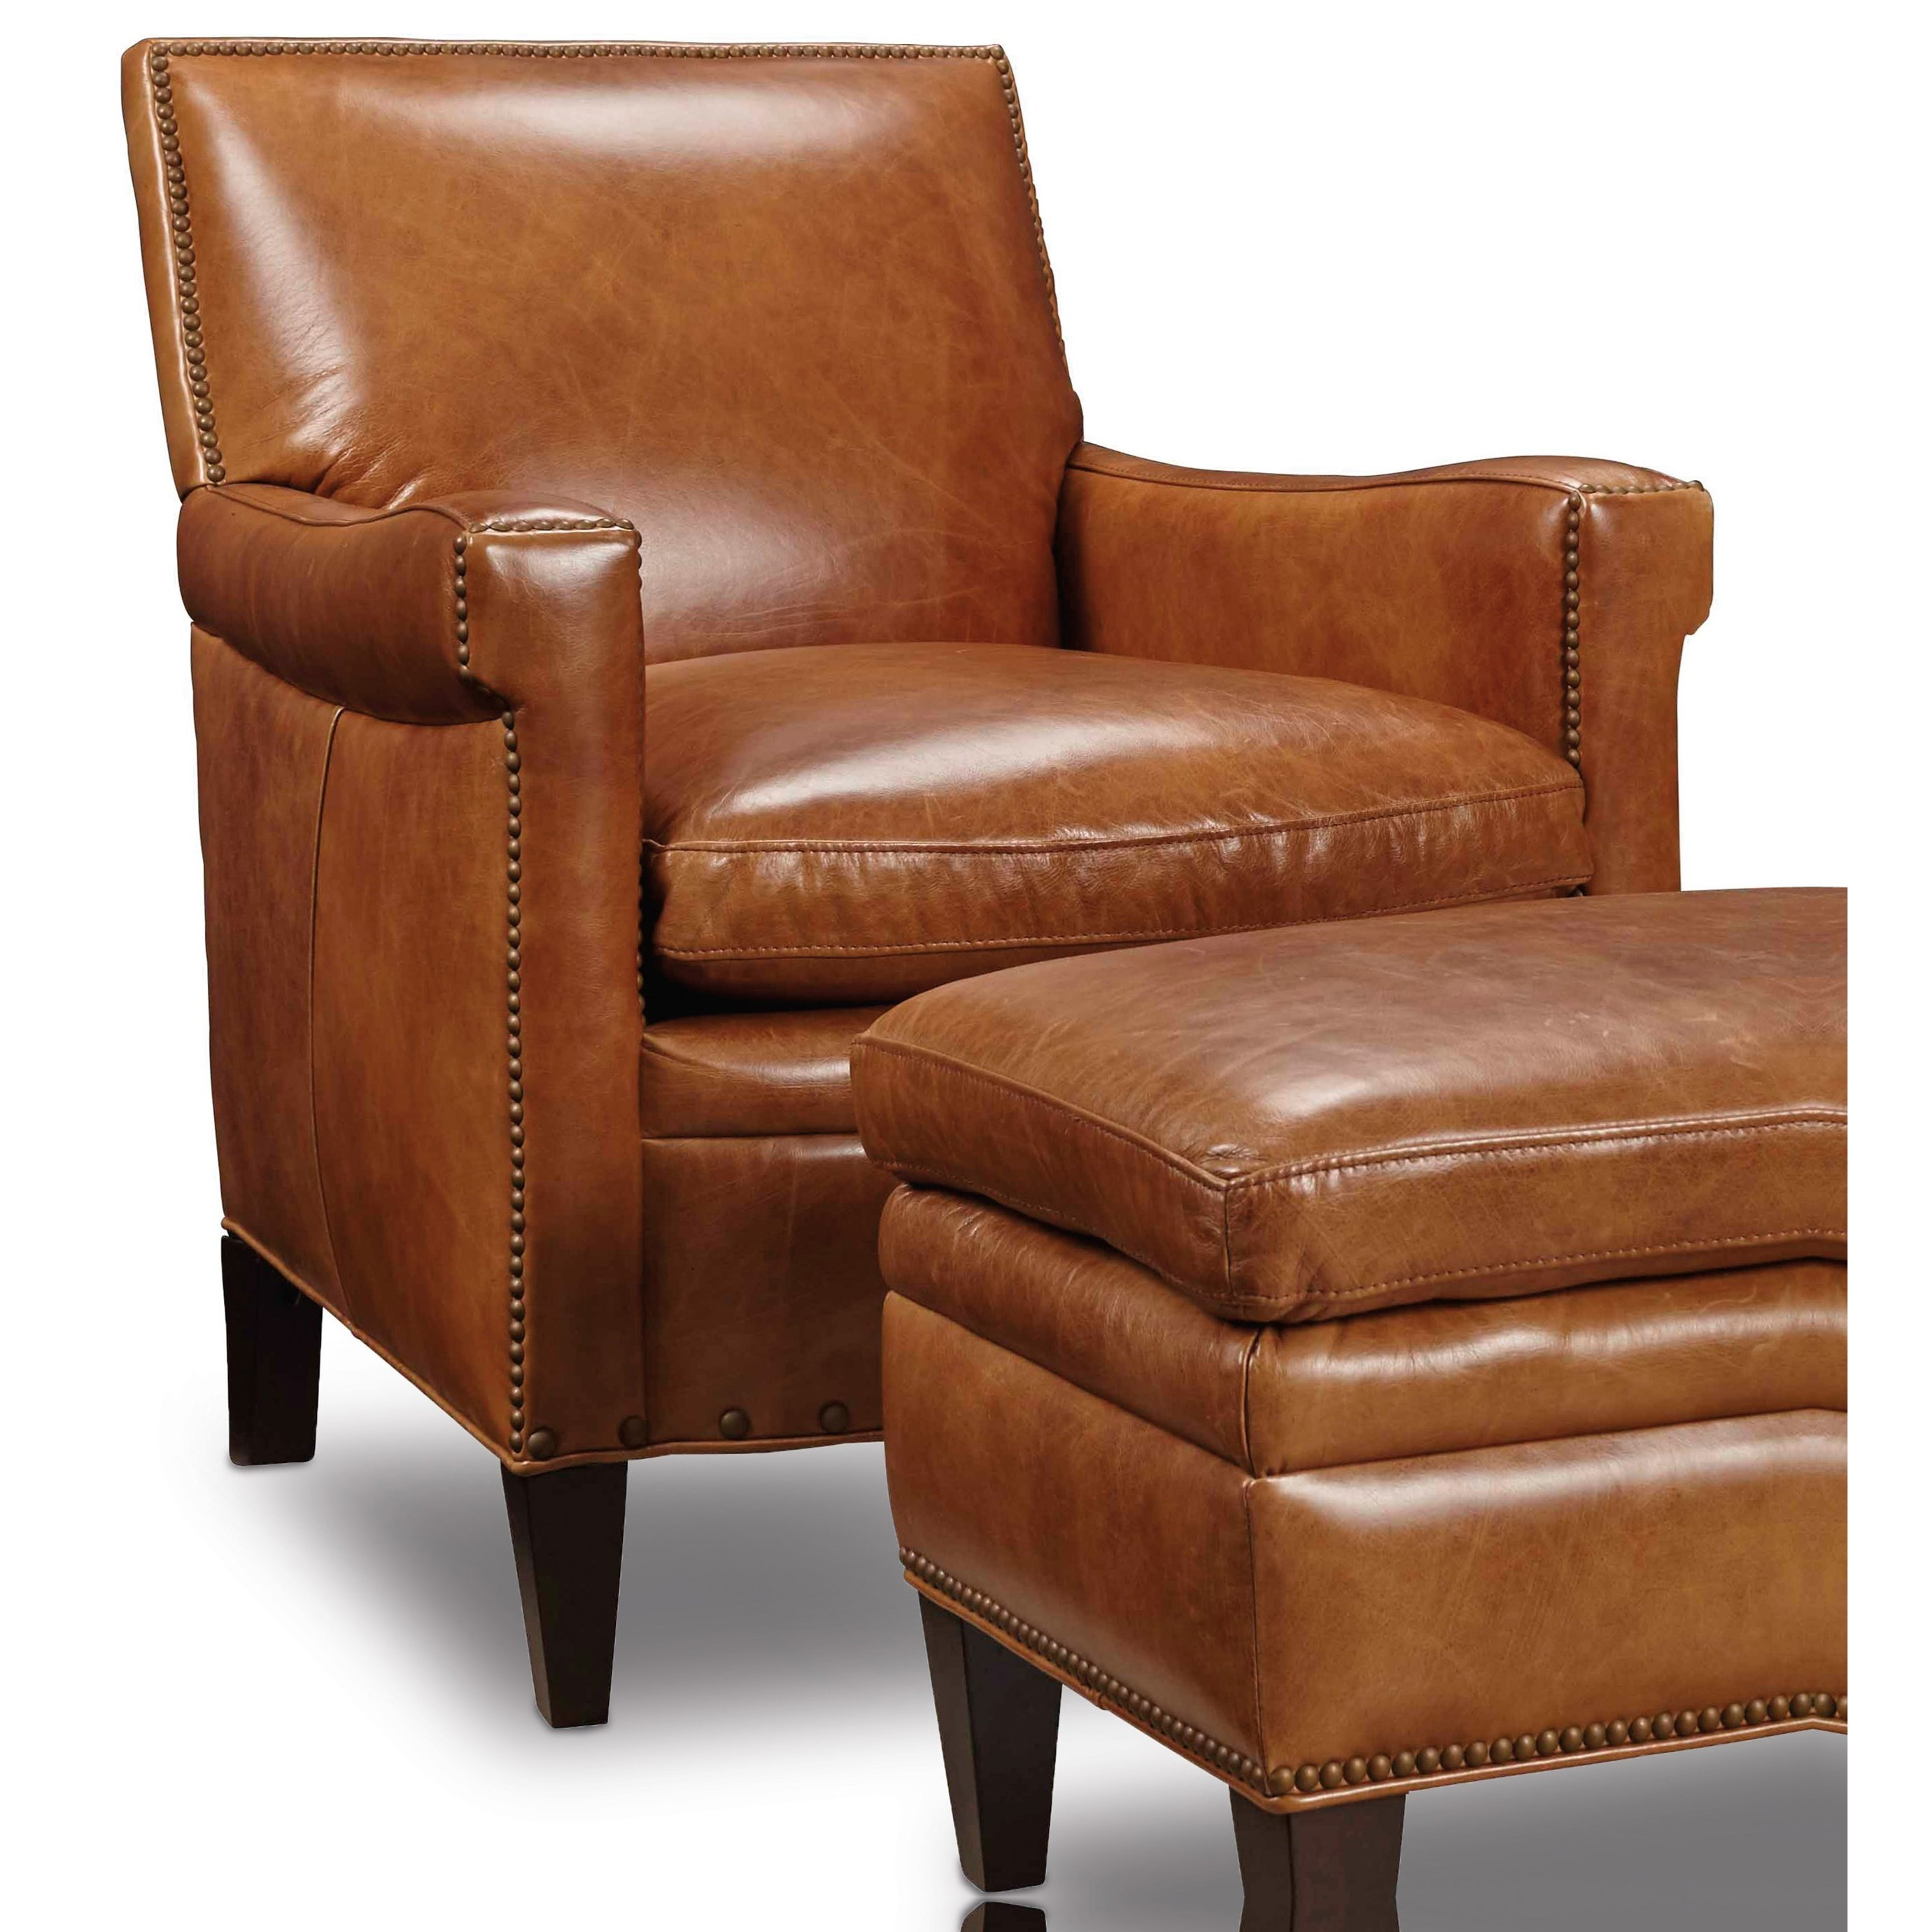 Upholstered Club Chair Hamilton Home Club Chairs Traditional Club Chair With